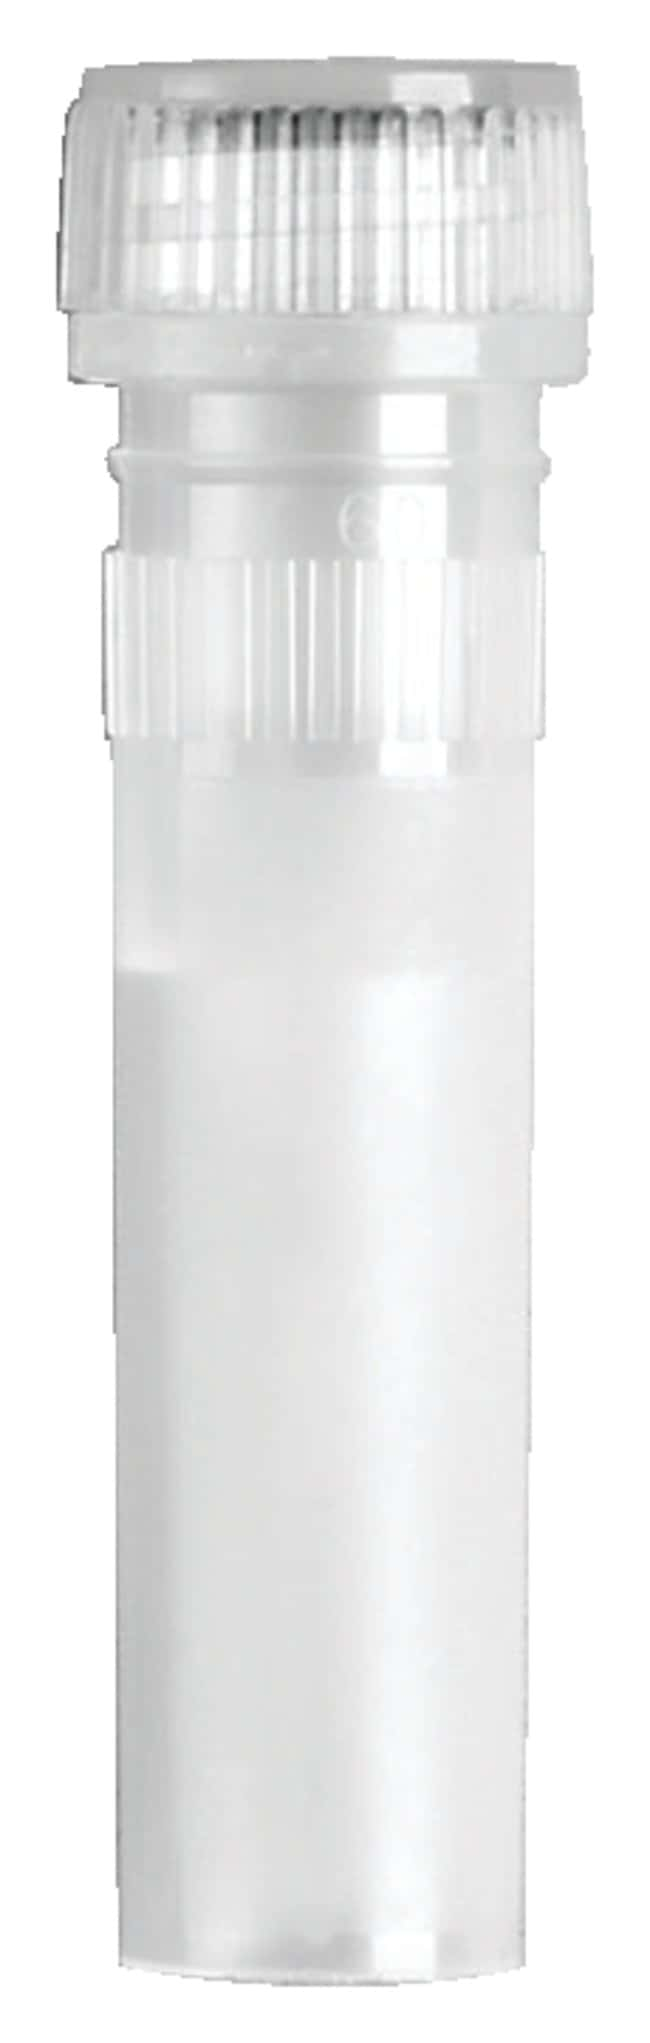 Fisherbrand™ Microcentrifuge Tubes with Tether Cap